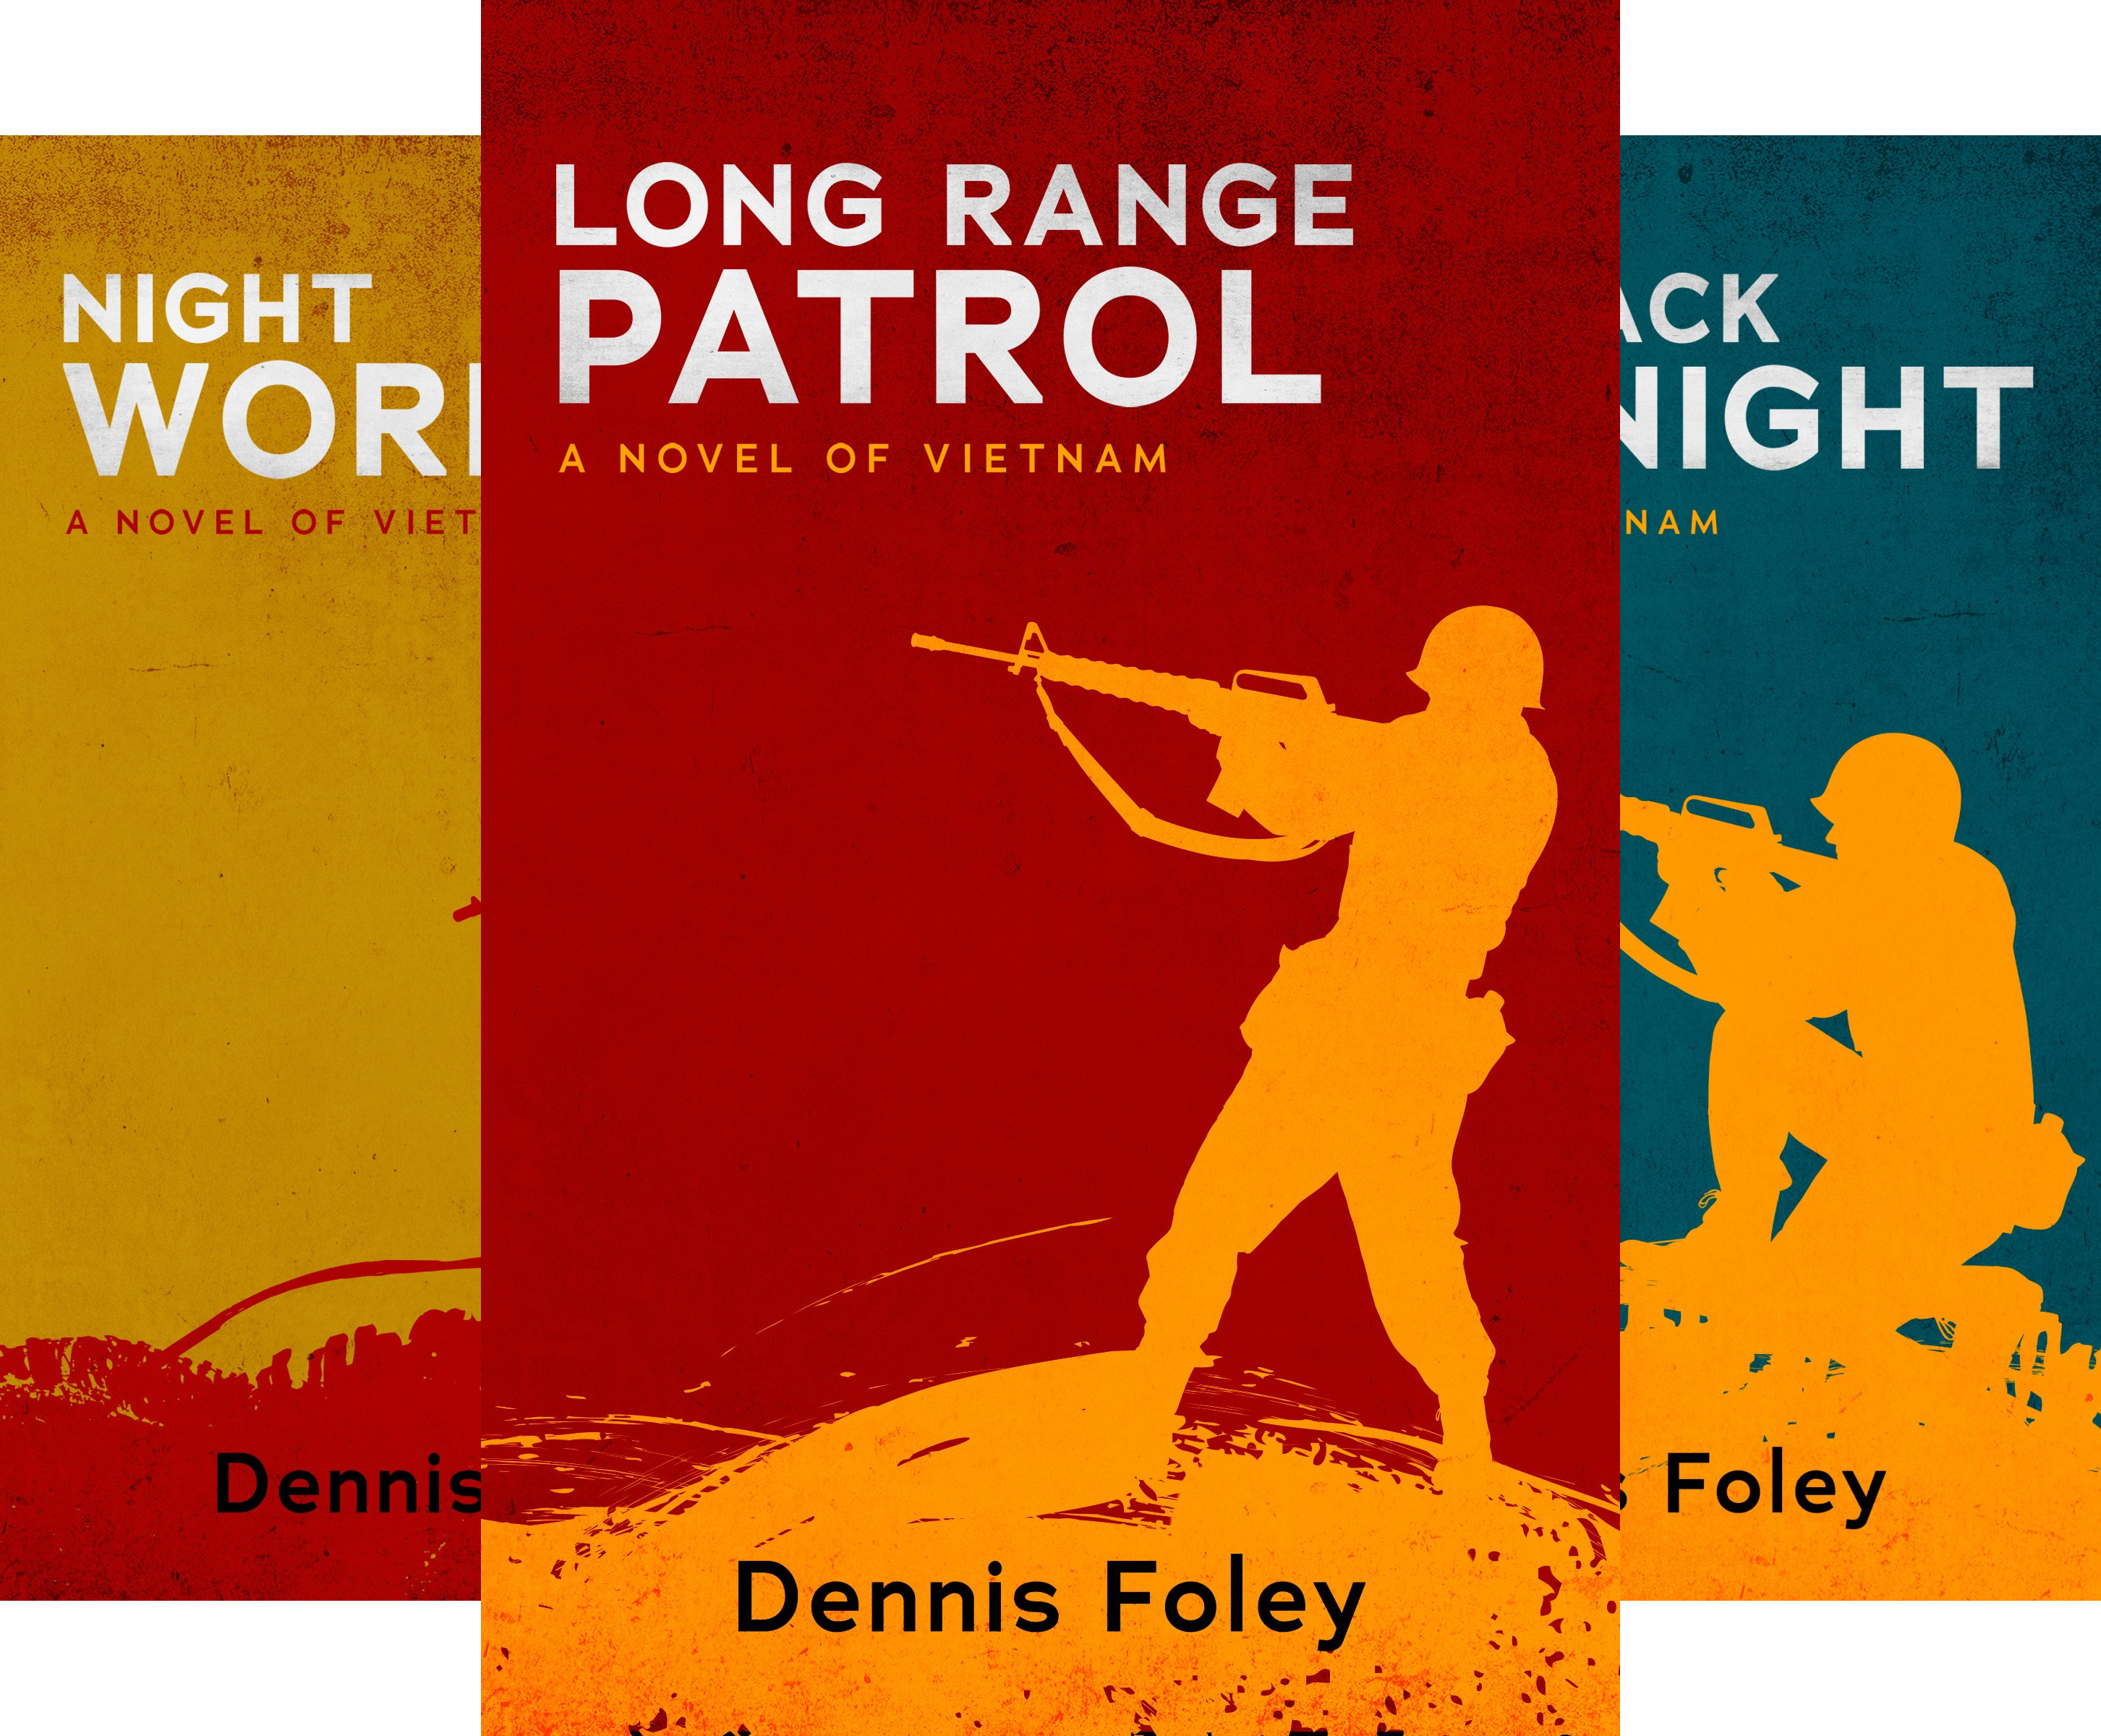 Foley Dennis (The Jim Hollister Trilogy (3 Book Series))